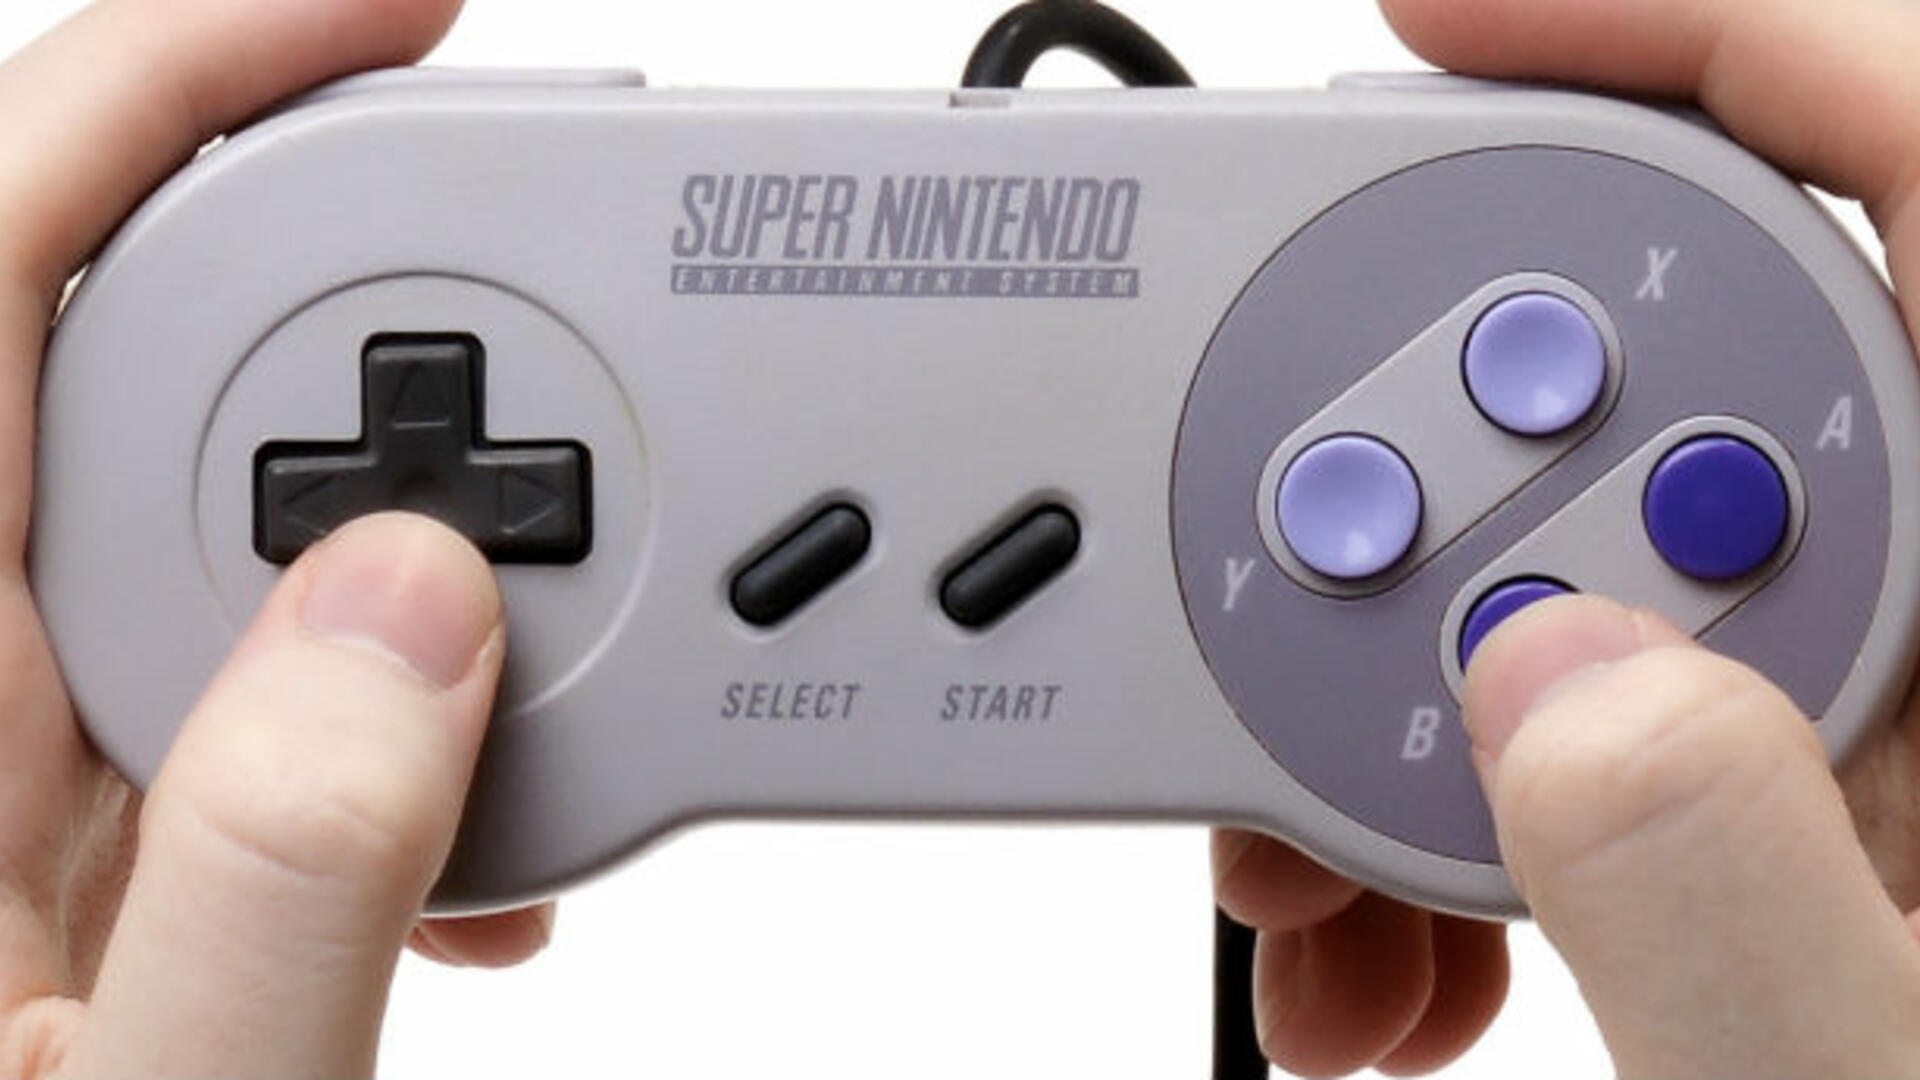 If You Open a Super Nintendo Controller, You'll Find Something Cool